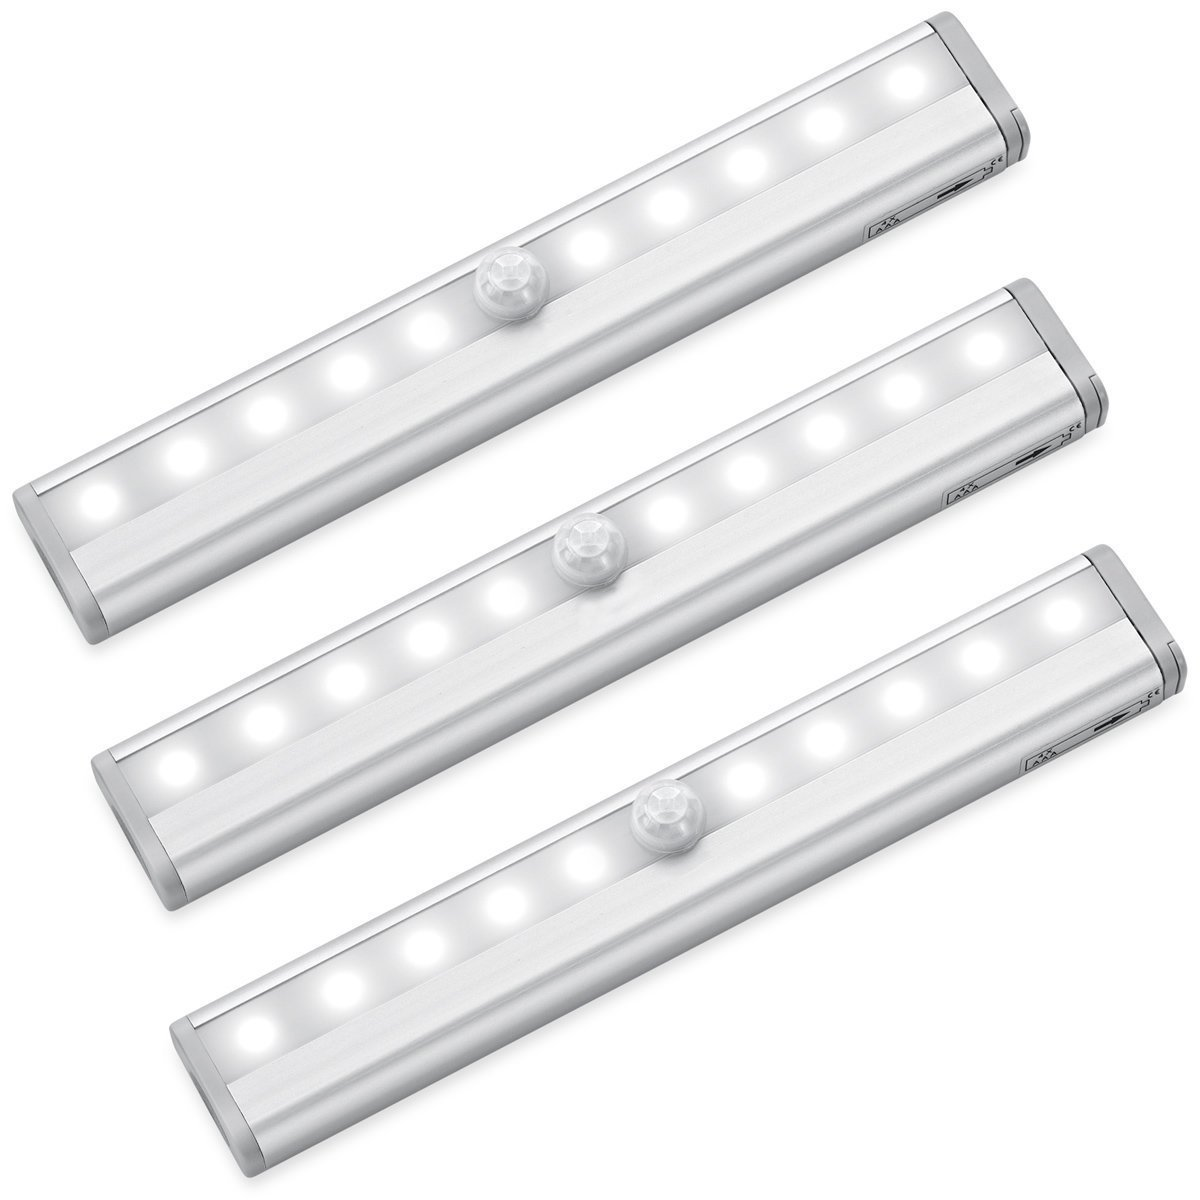 Motion Sensor Closet Lights RUOYIER Portable Wireless 10-LED Stick-on anywhere Cabinet motion sensing light with Magnetic Strip for Wardrobe Stairs Step Night Light Bar(Battery Operated 3-pack)